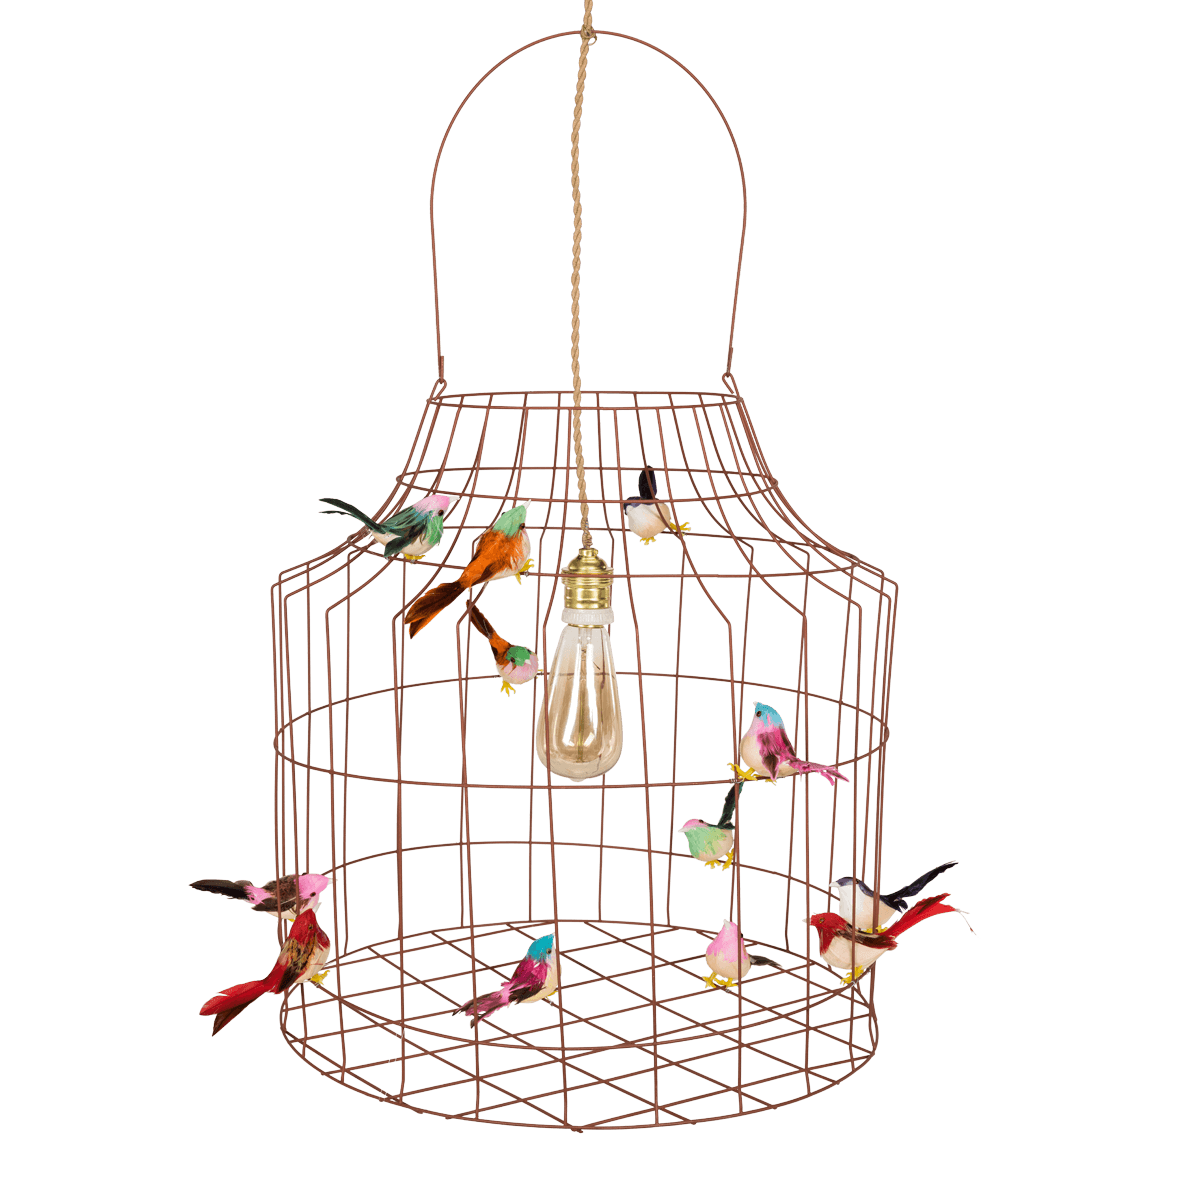 Dutch Dilight Vogelkooi Hanglamp Lampshade Birdcage Light Home Decor House